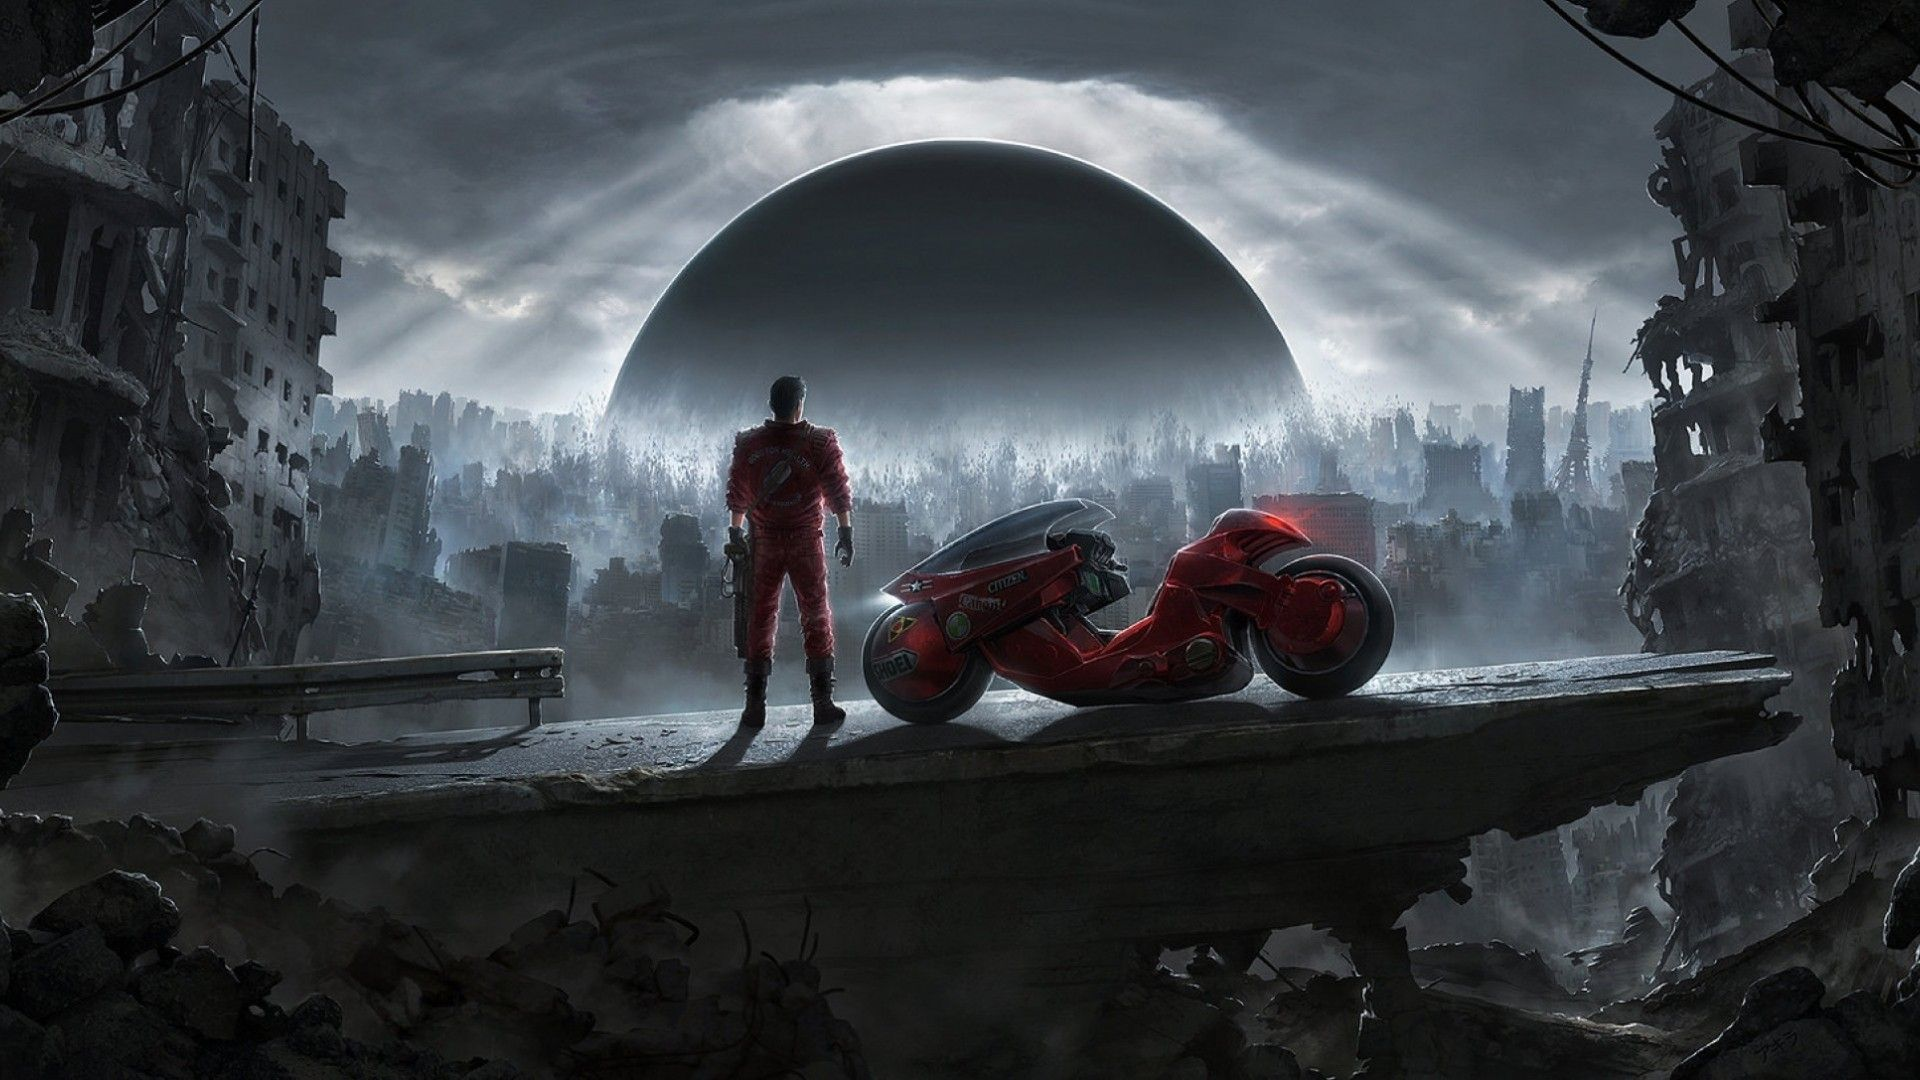 1920x1080 Akira Anime | Download HD Wallpapers